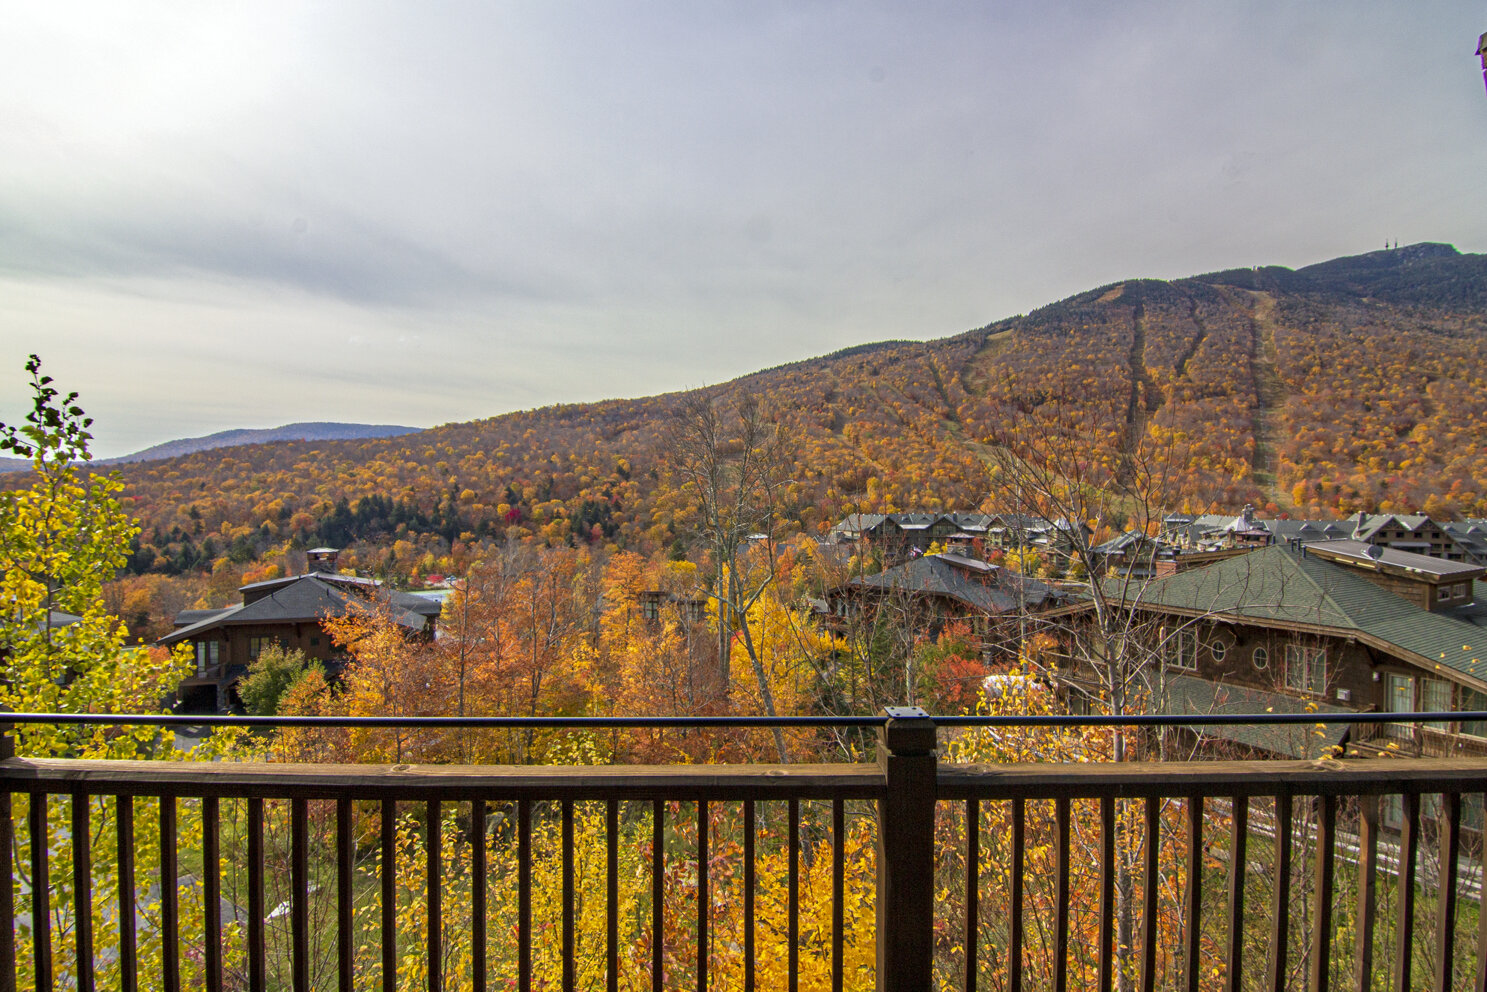 16-2019-10-15 IMG_5408 View to the Mountain from the Balcony.jpg